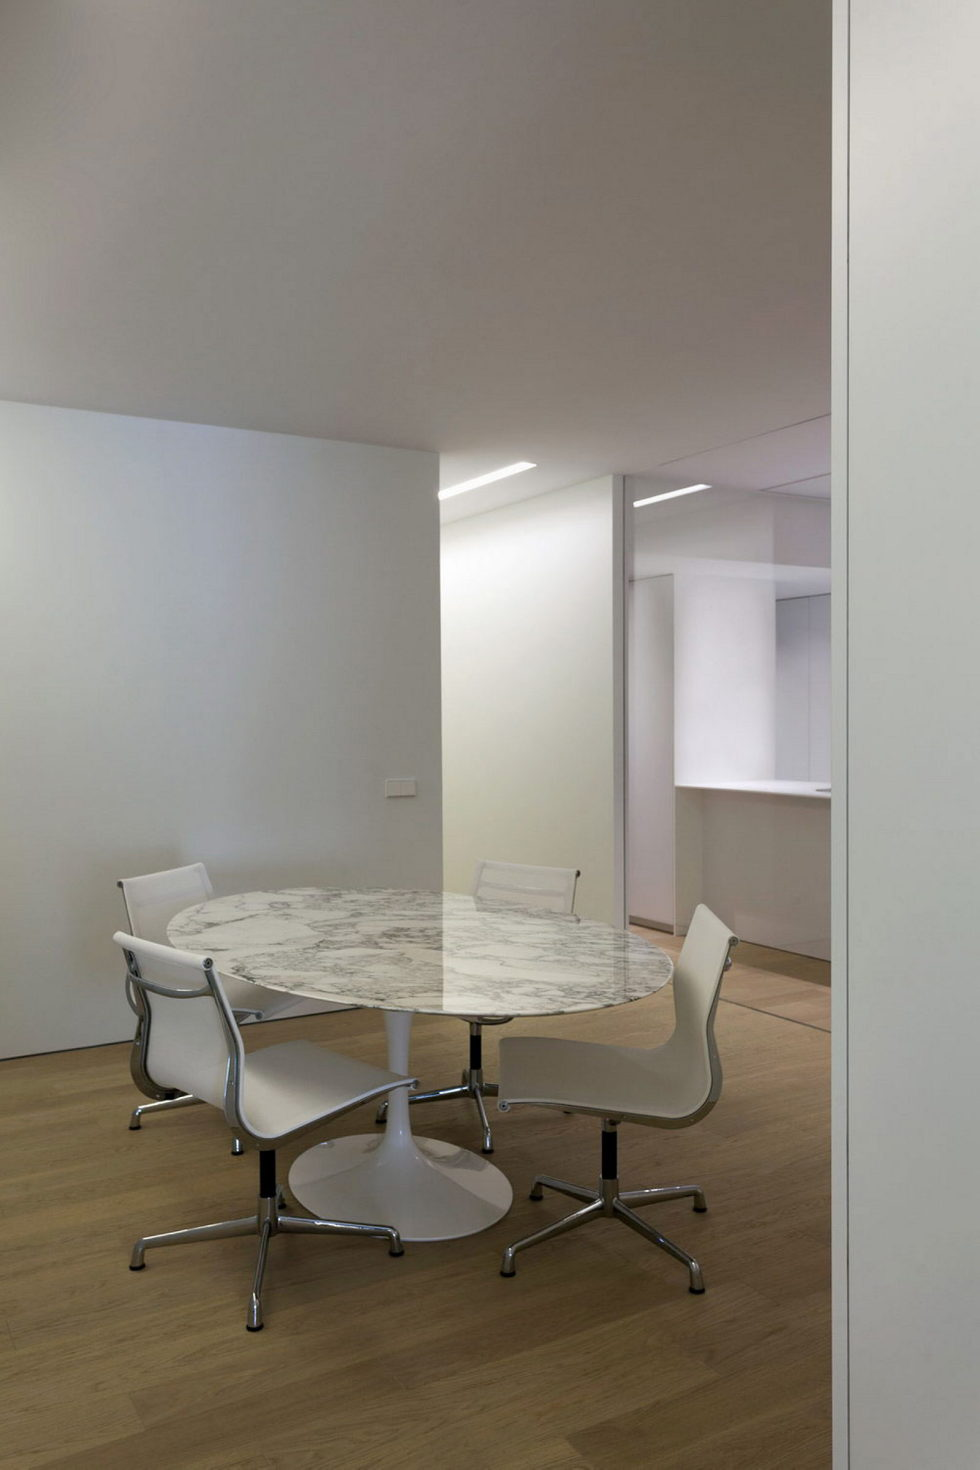 Contemporarily Designed Apartment In Valencia by Fran Silvestre Arquitectos 13